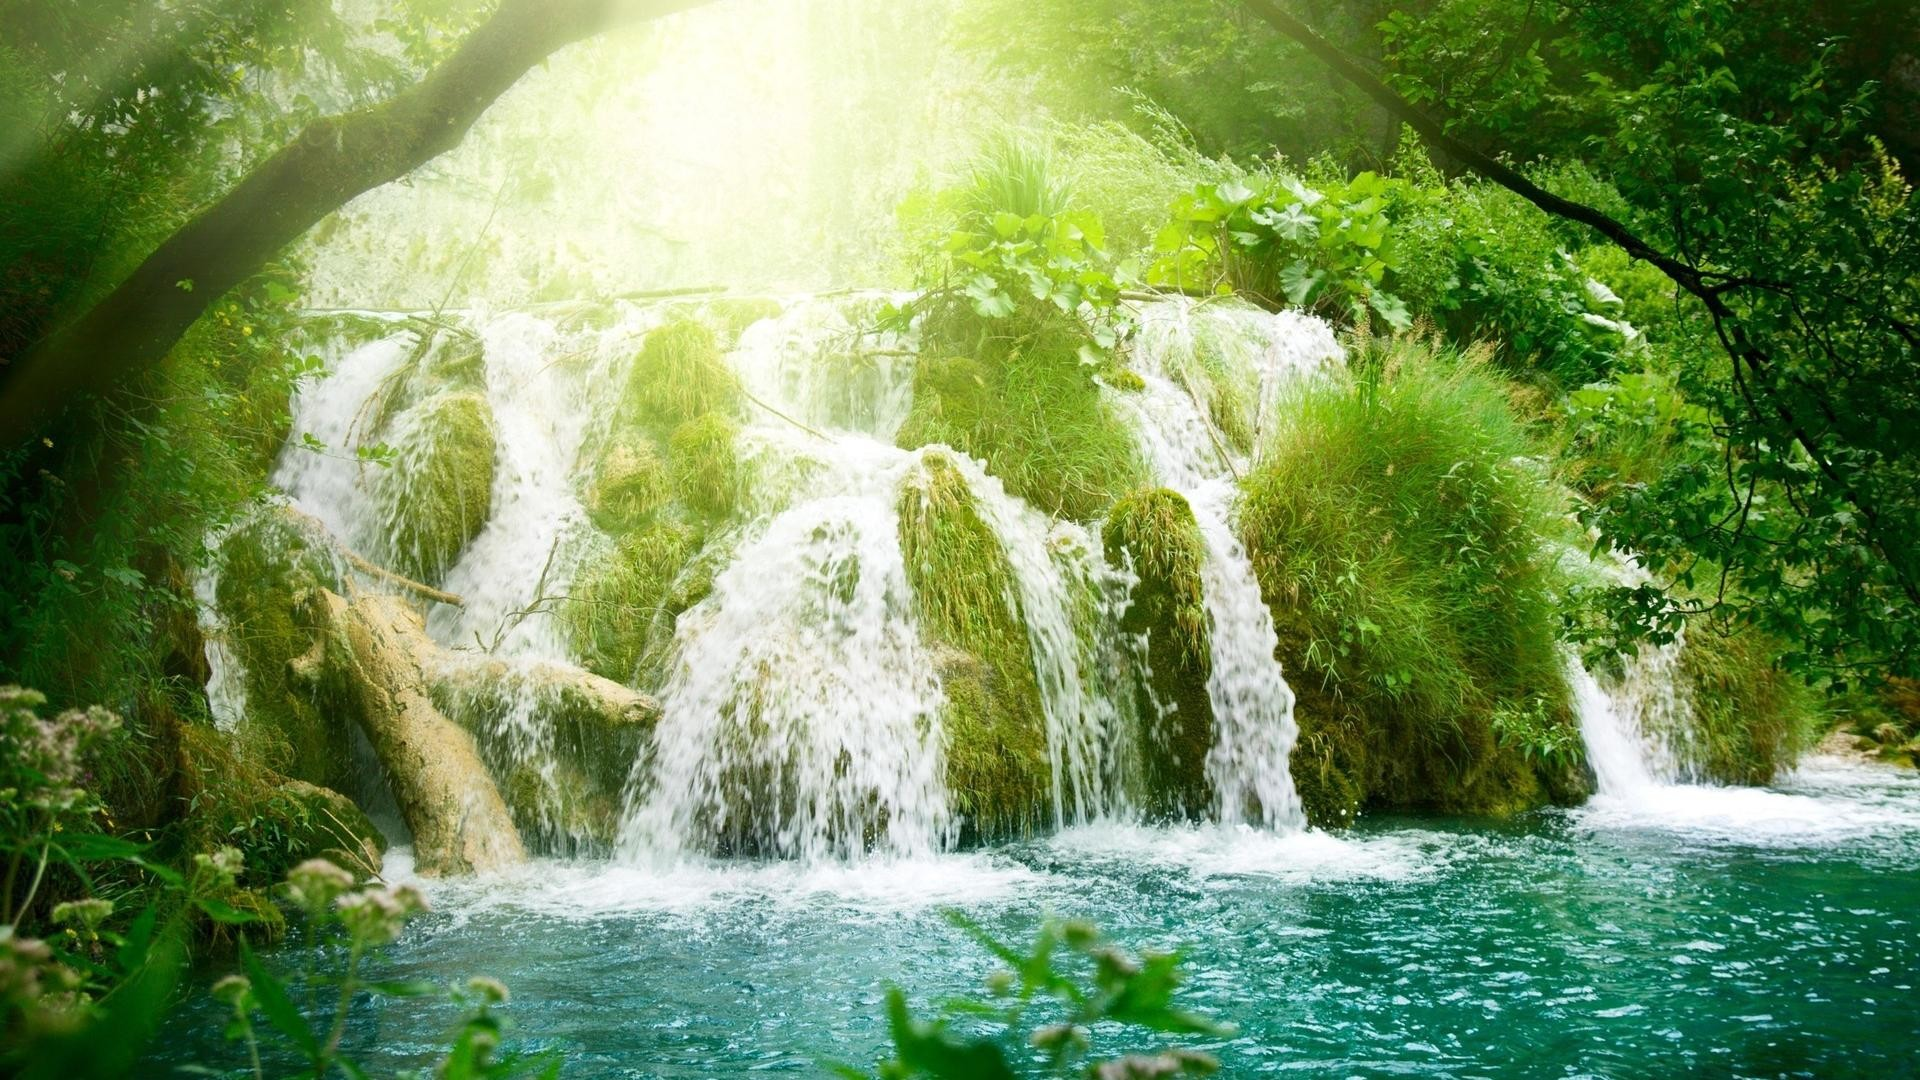 Amazing Forest waterfall and rivers background